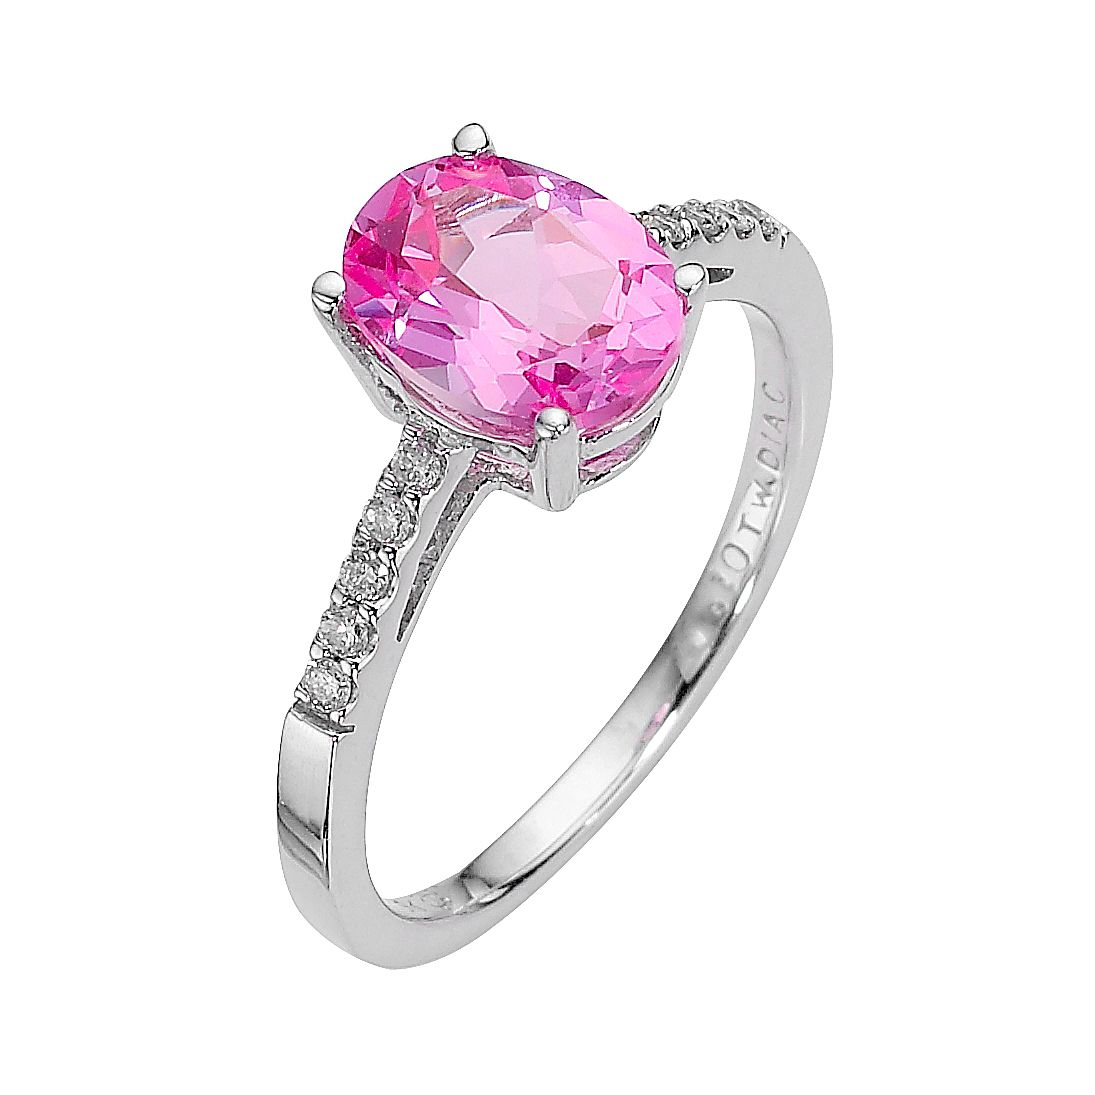 rose set diamonds solitaire sapphire pink products cut ladies certified wave cushion gia ring gold sea stone gemstone metal band